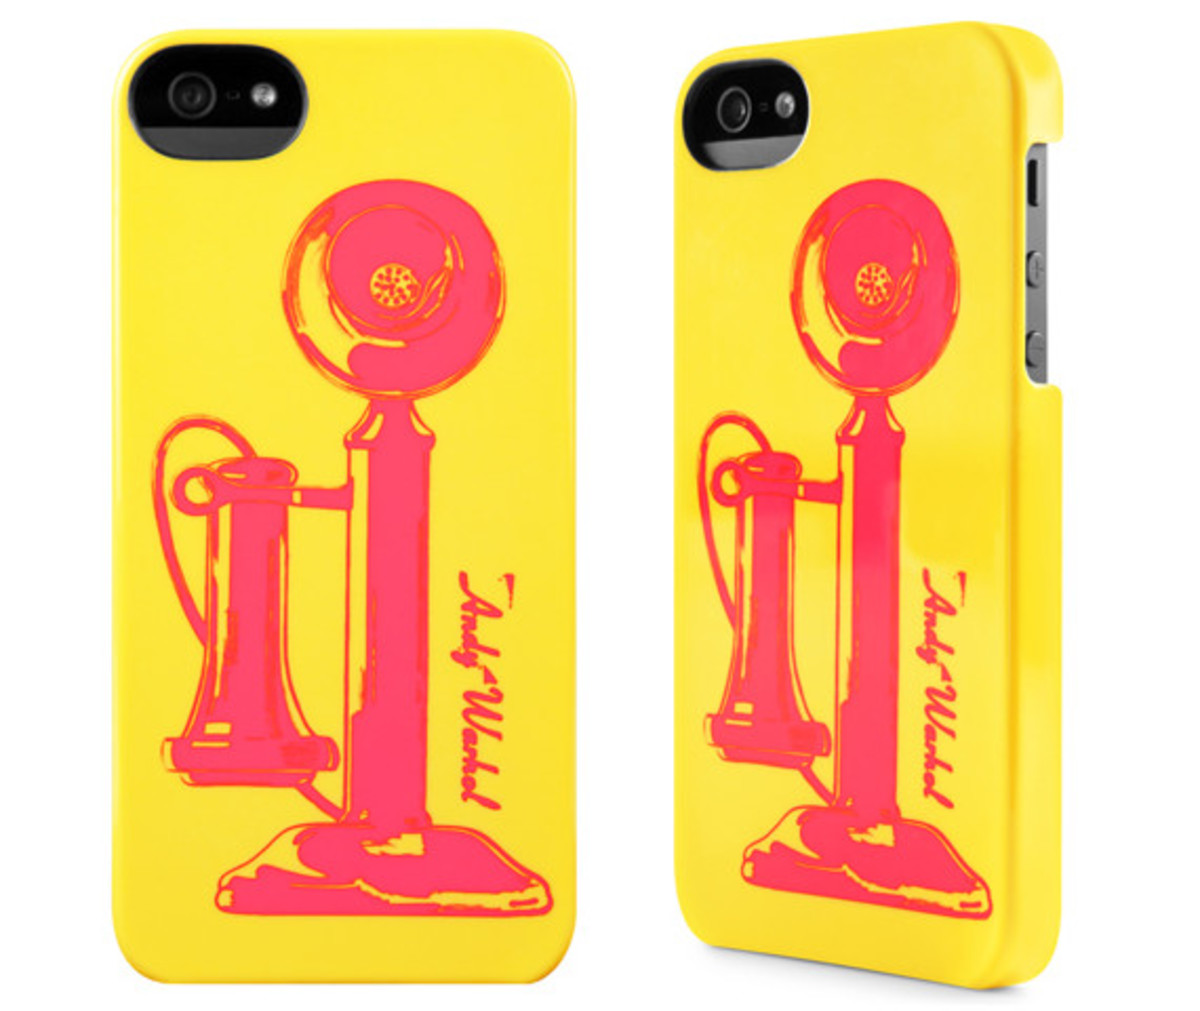 incase-for-andy-warhol-collection-iphone-5-cases-07